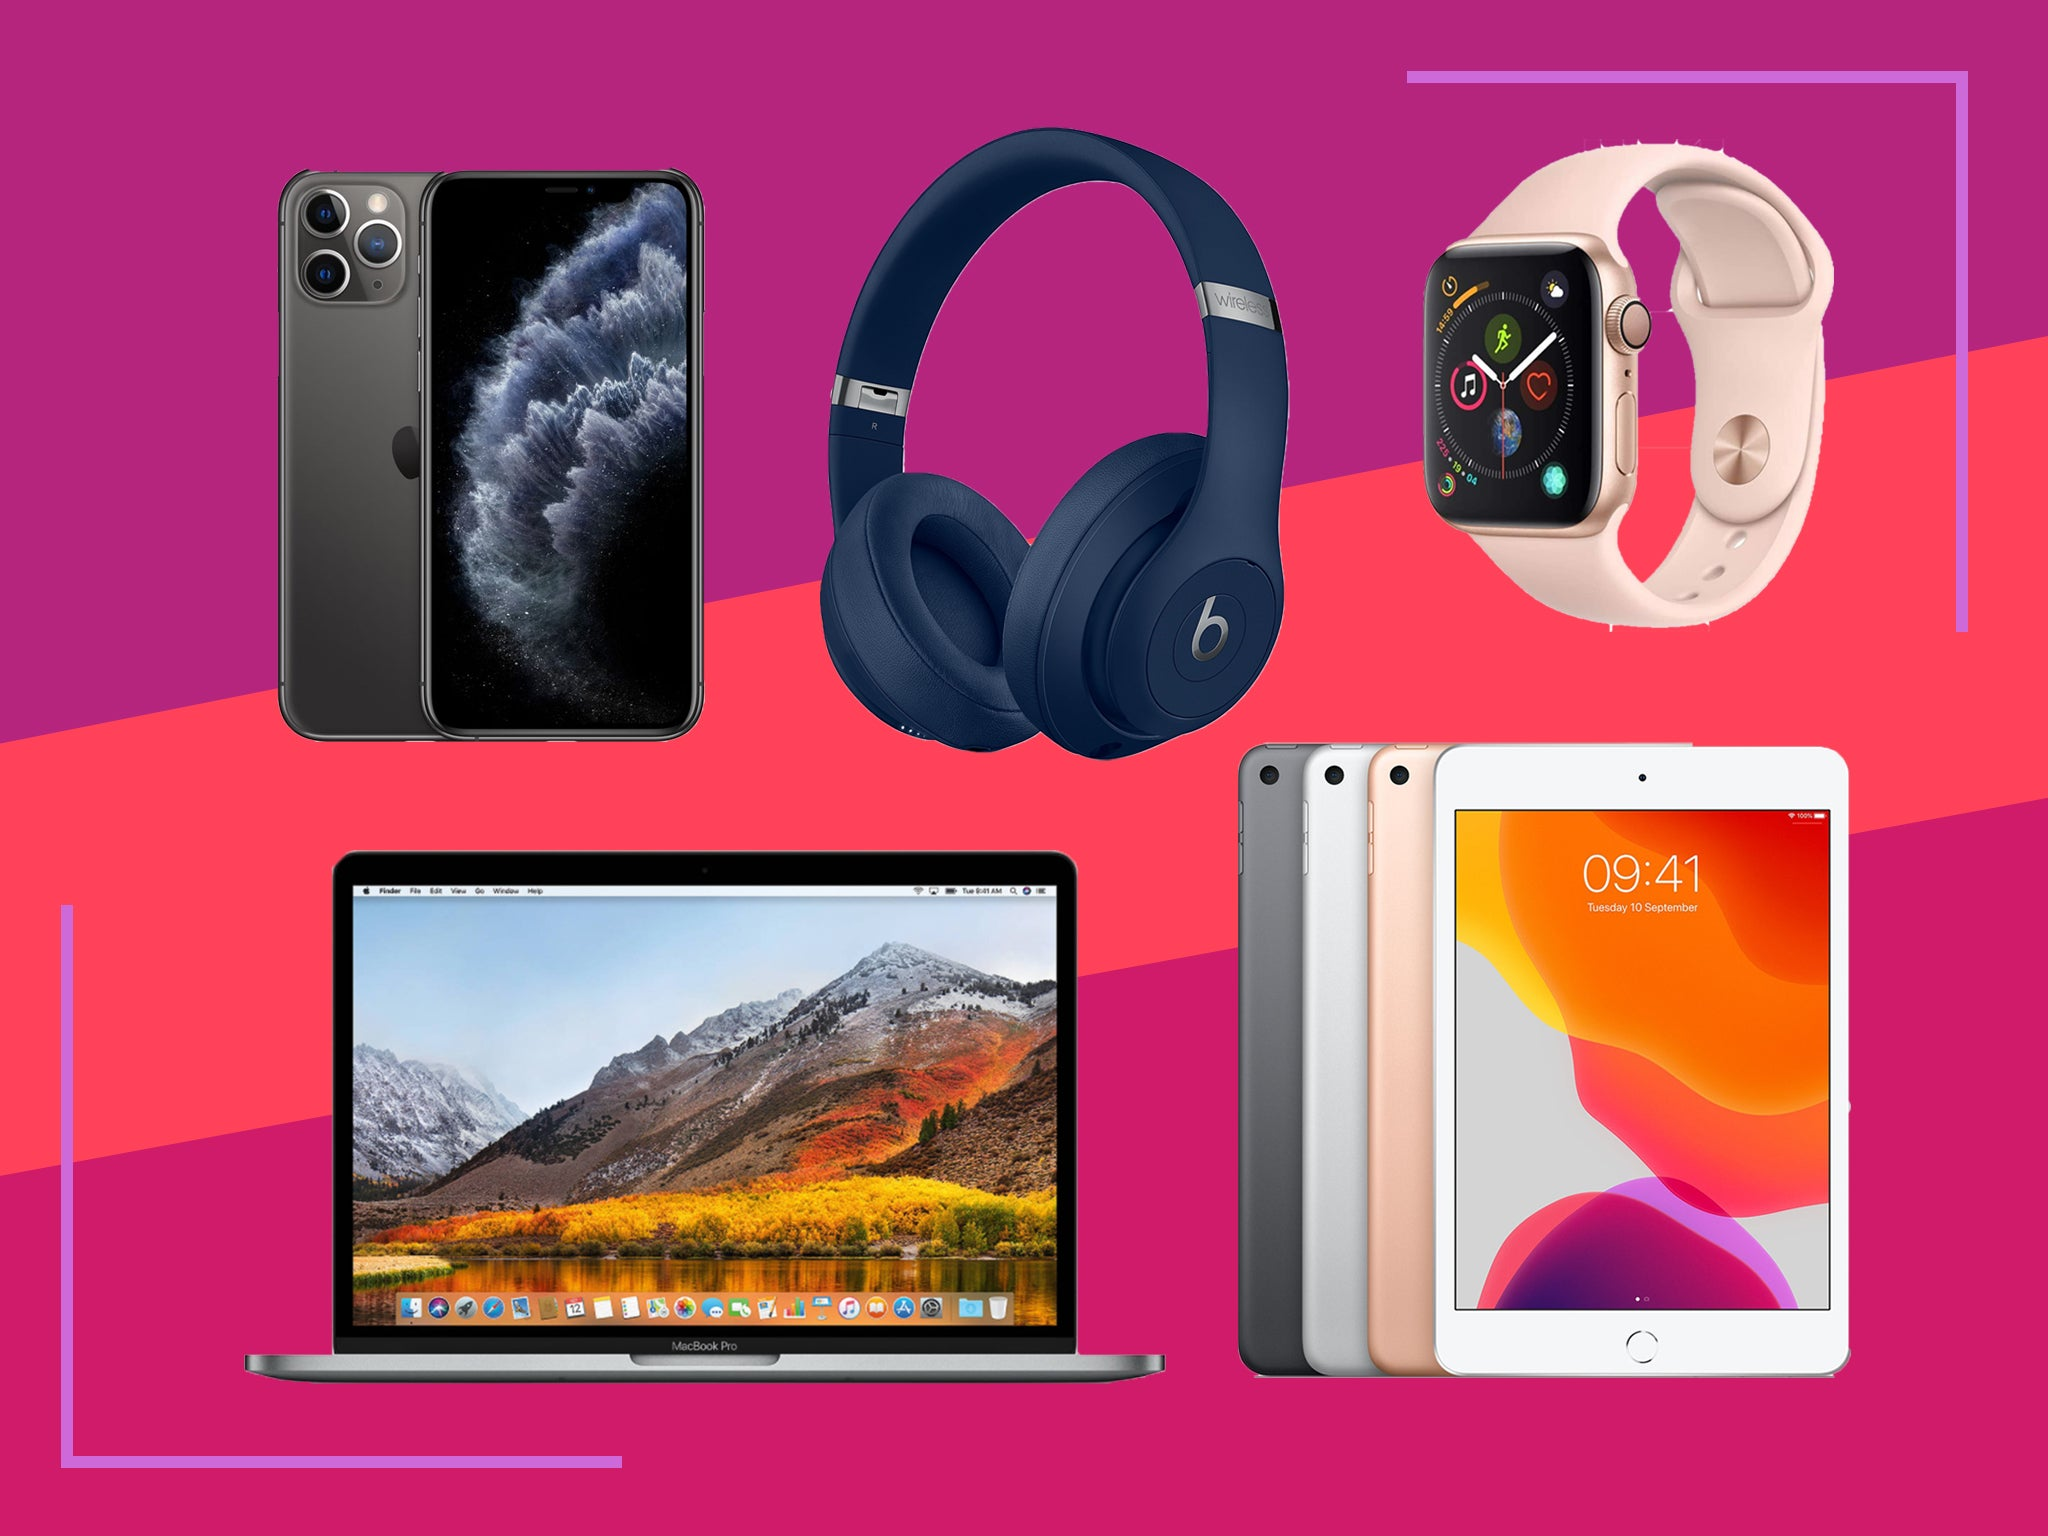 Best Apple Black Friday Deals 2020 Airpods Iphones Macbooks And More The Independent